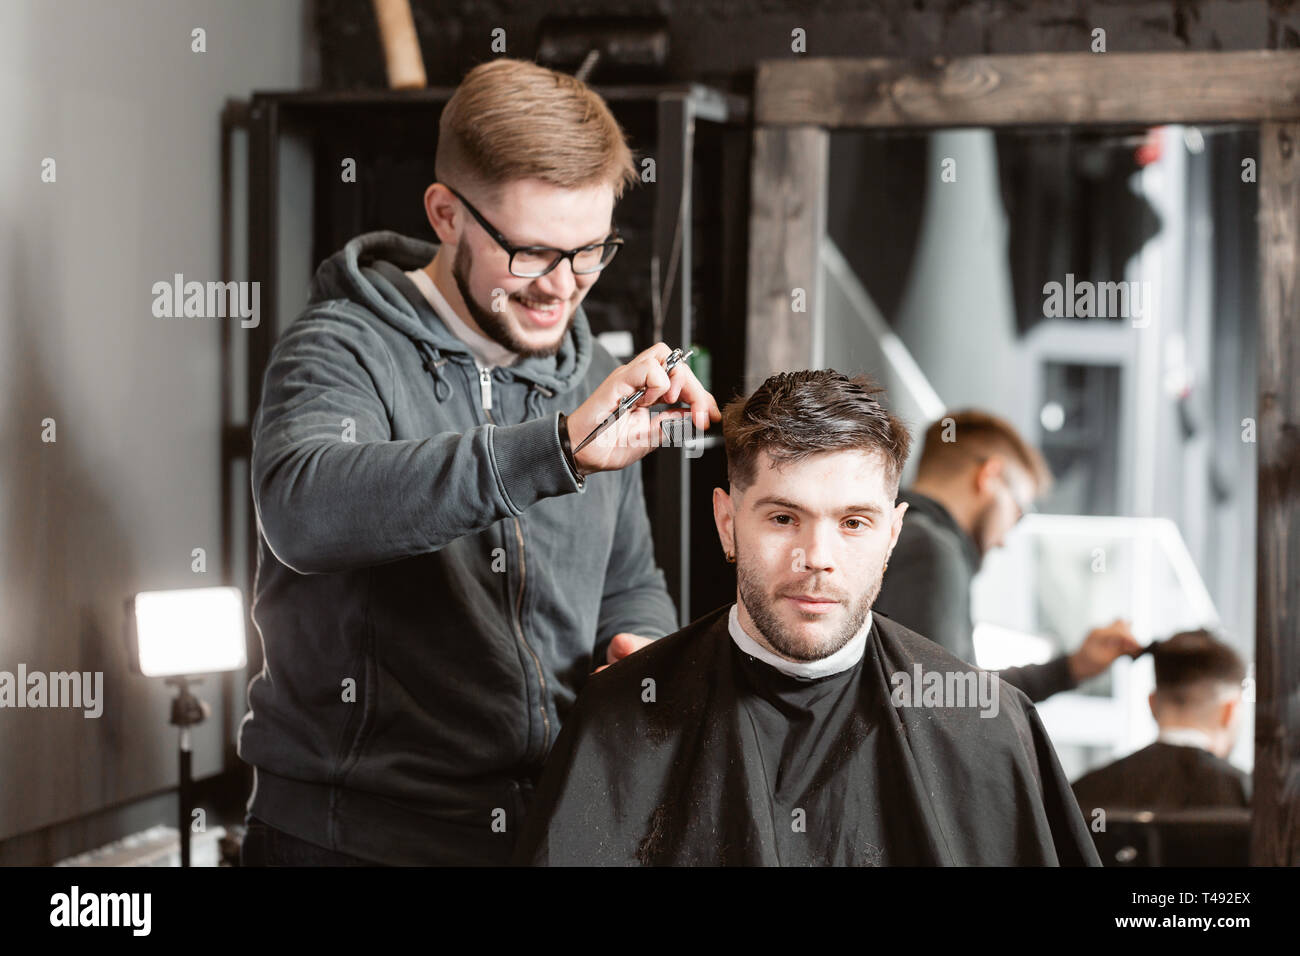 Hair cutting with metal scissors. Master cuts hair and beard